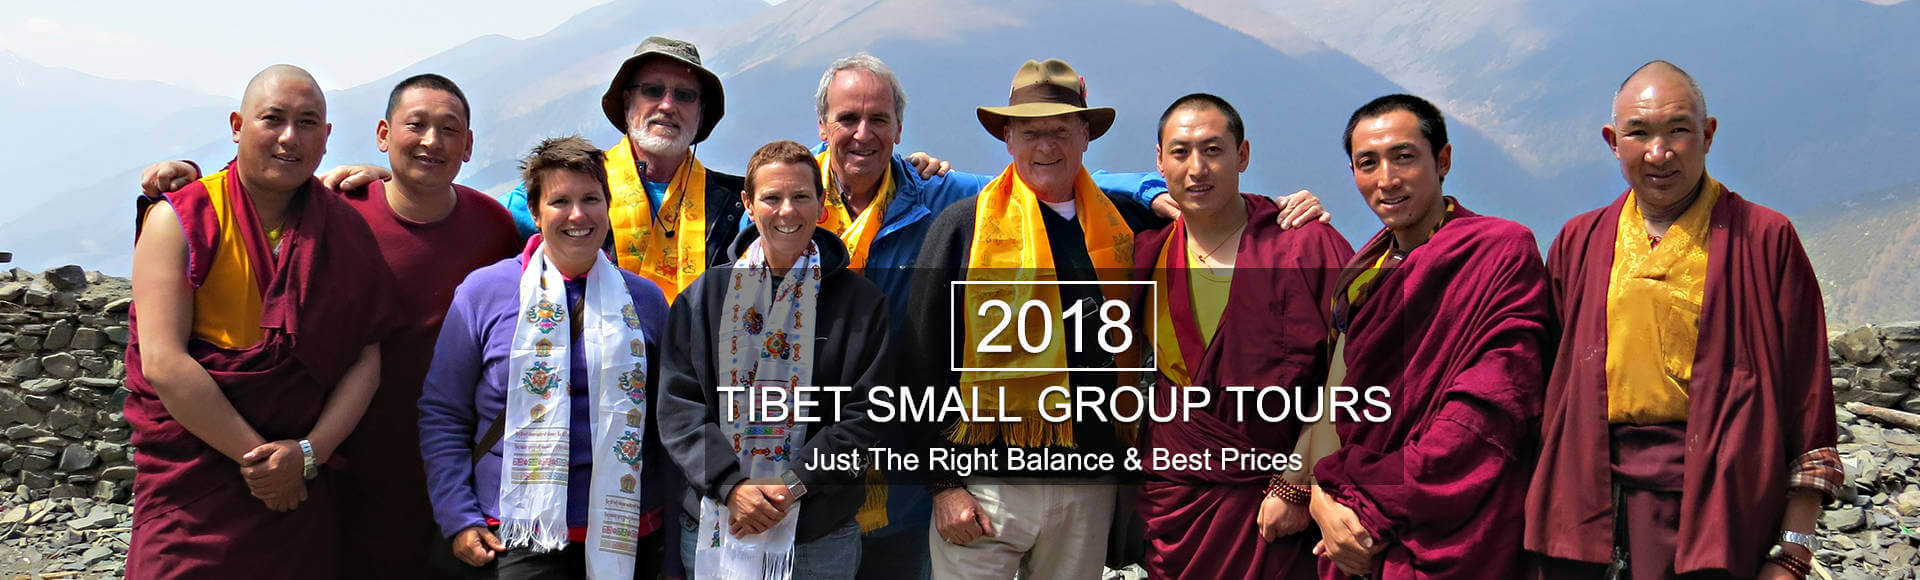 tibet-group-tours